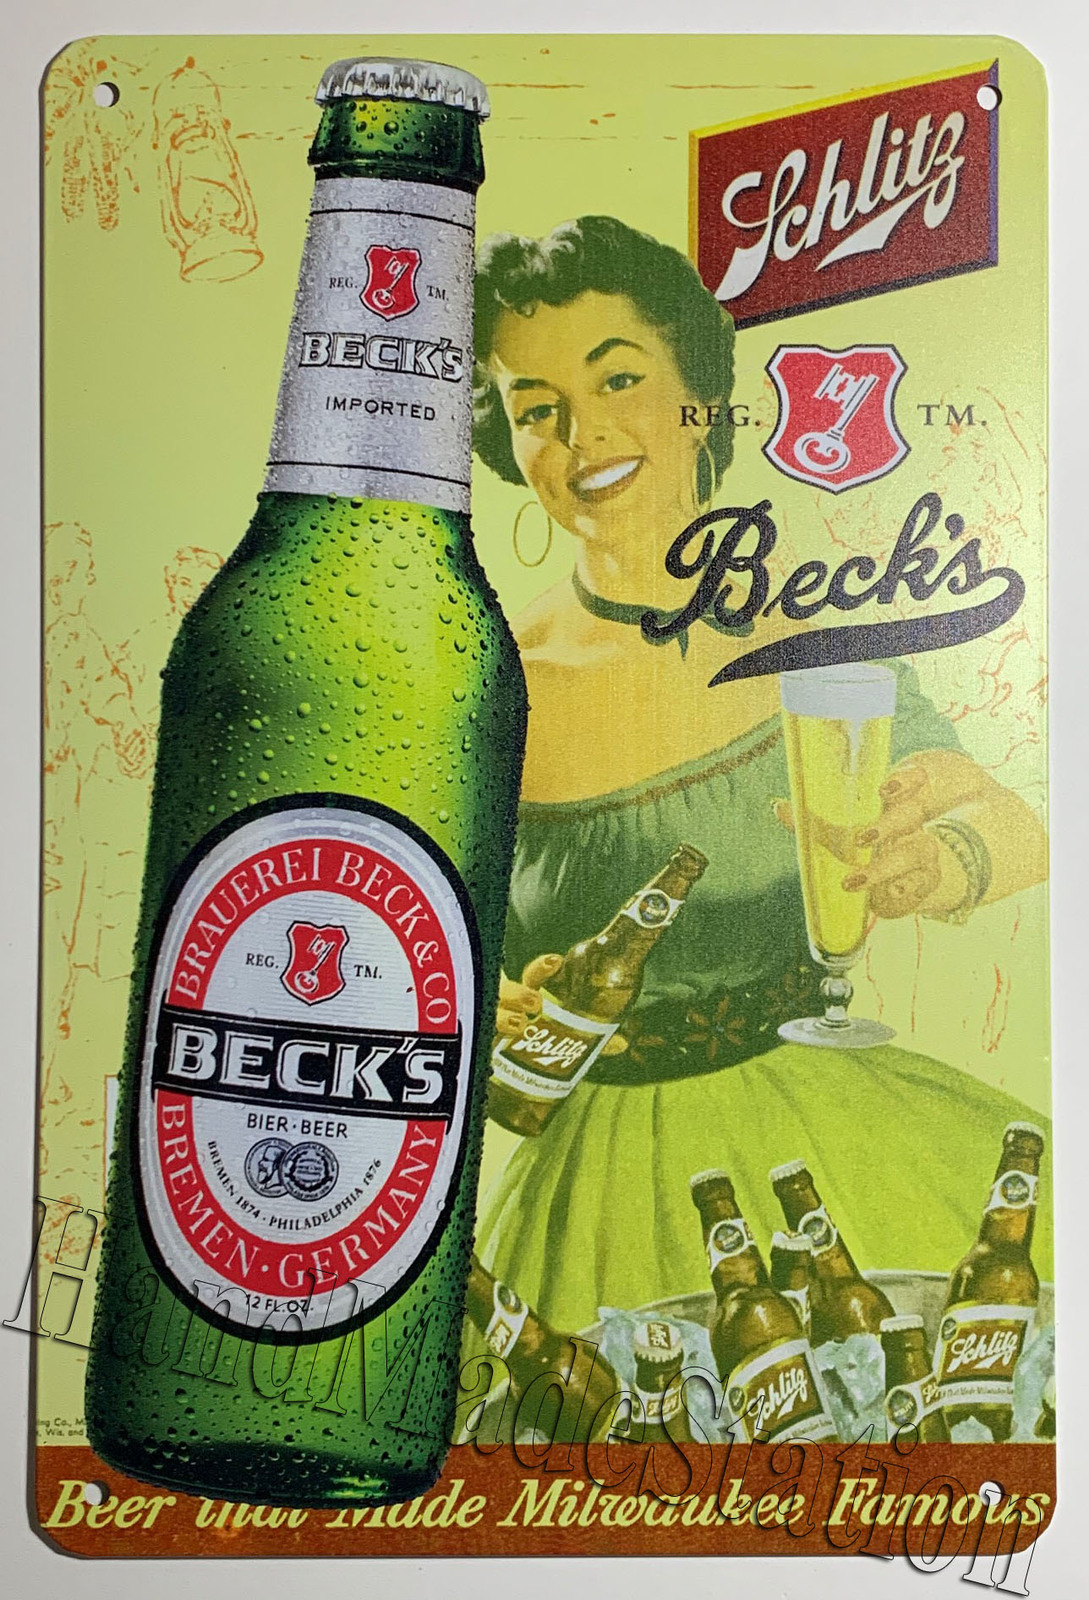 "Beck's Beer Bottle Logo Wall Metal Sign plate Home decor 11.75"" x 7.8"""